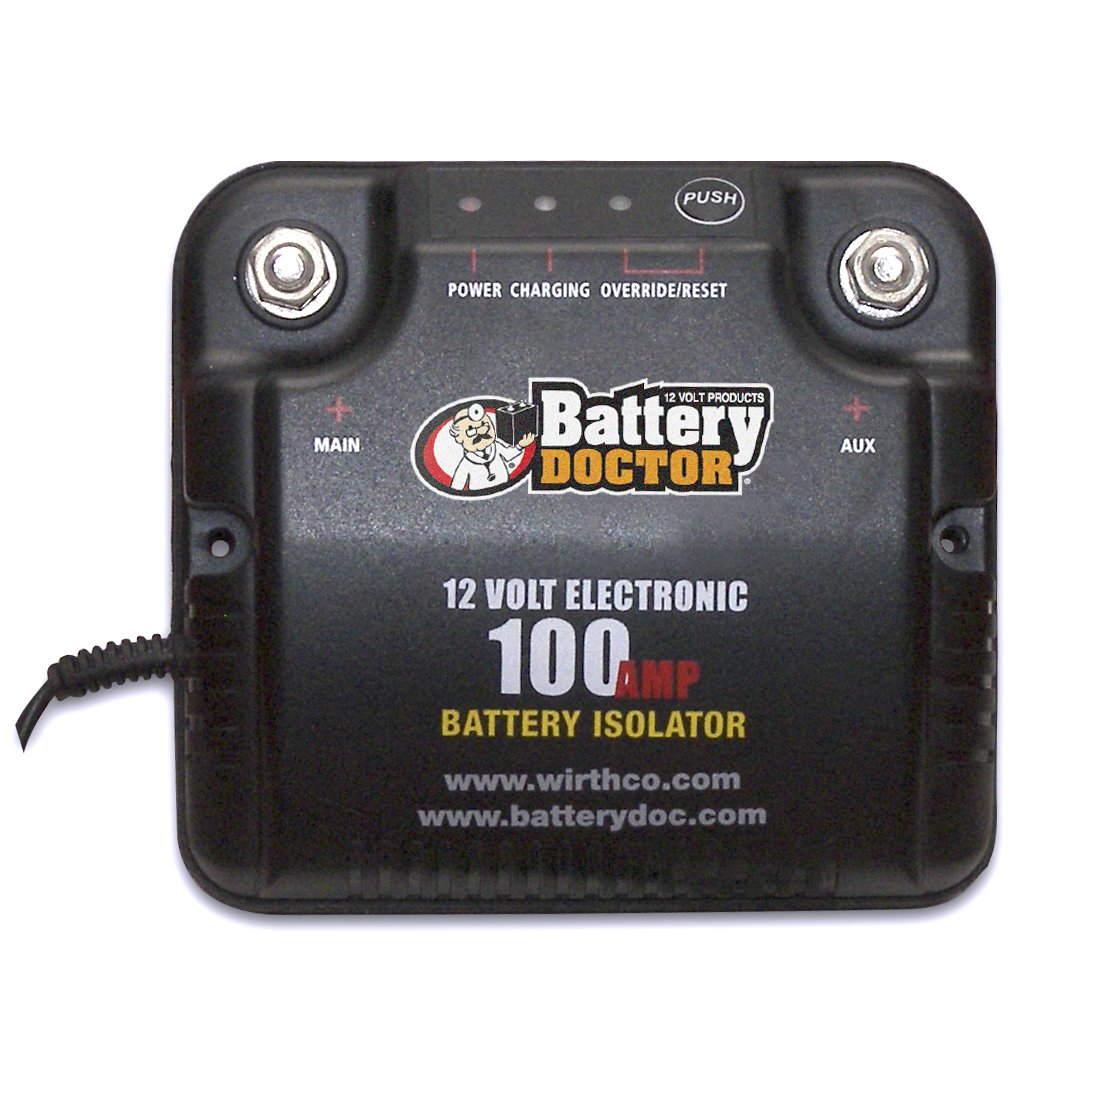 71C7jkFh94L._SL1104_ amazon com wirthco 20090 battery doctor 75 amp 100 amp battery  at bayanpartner.co